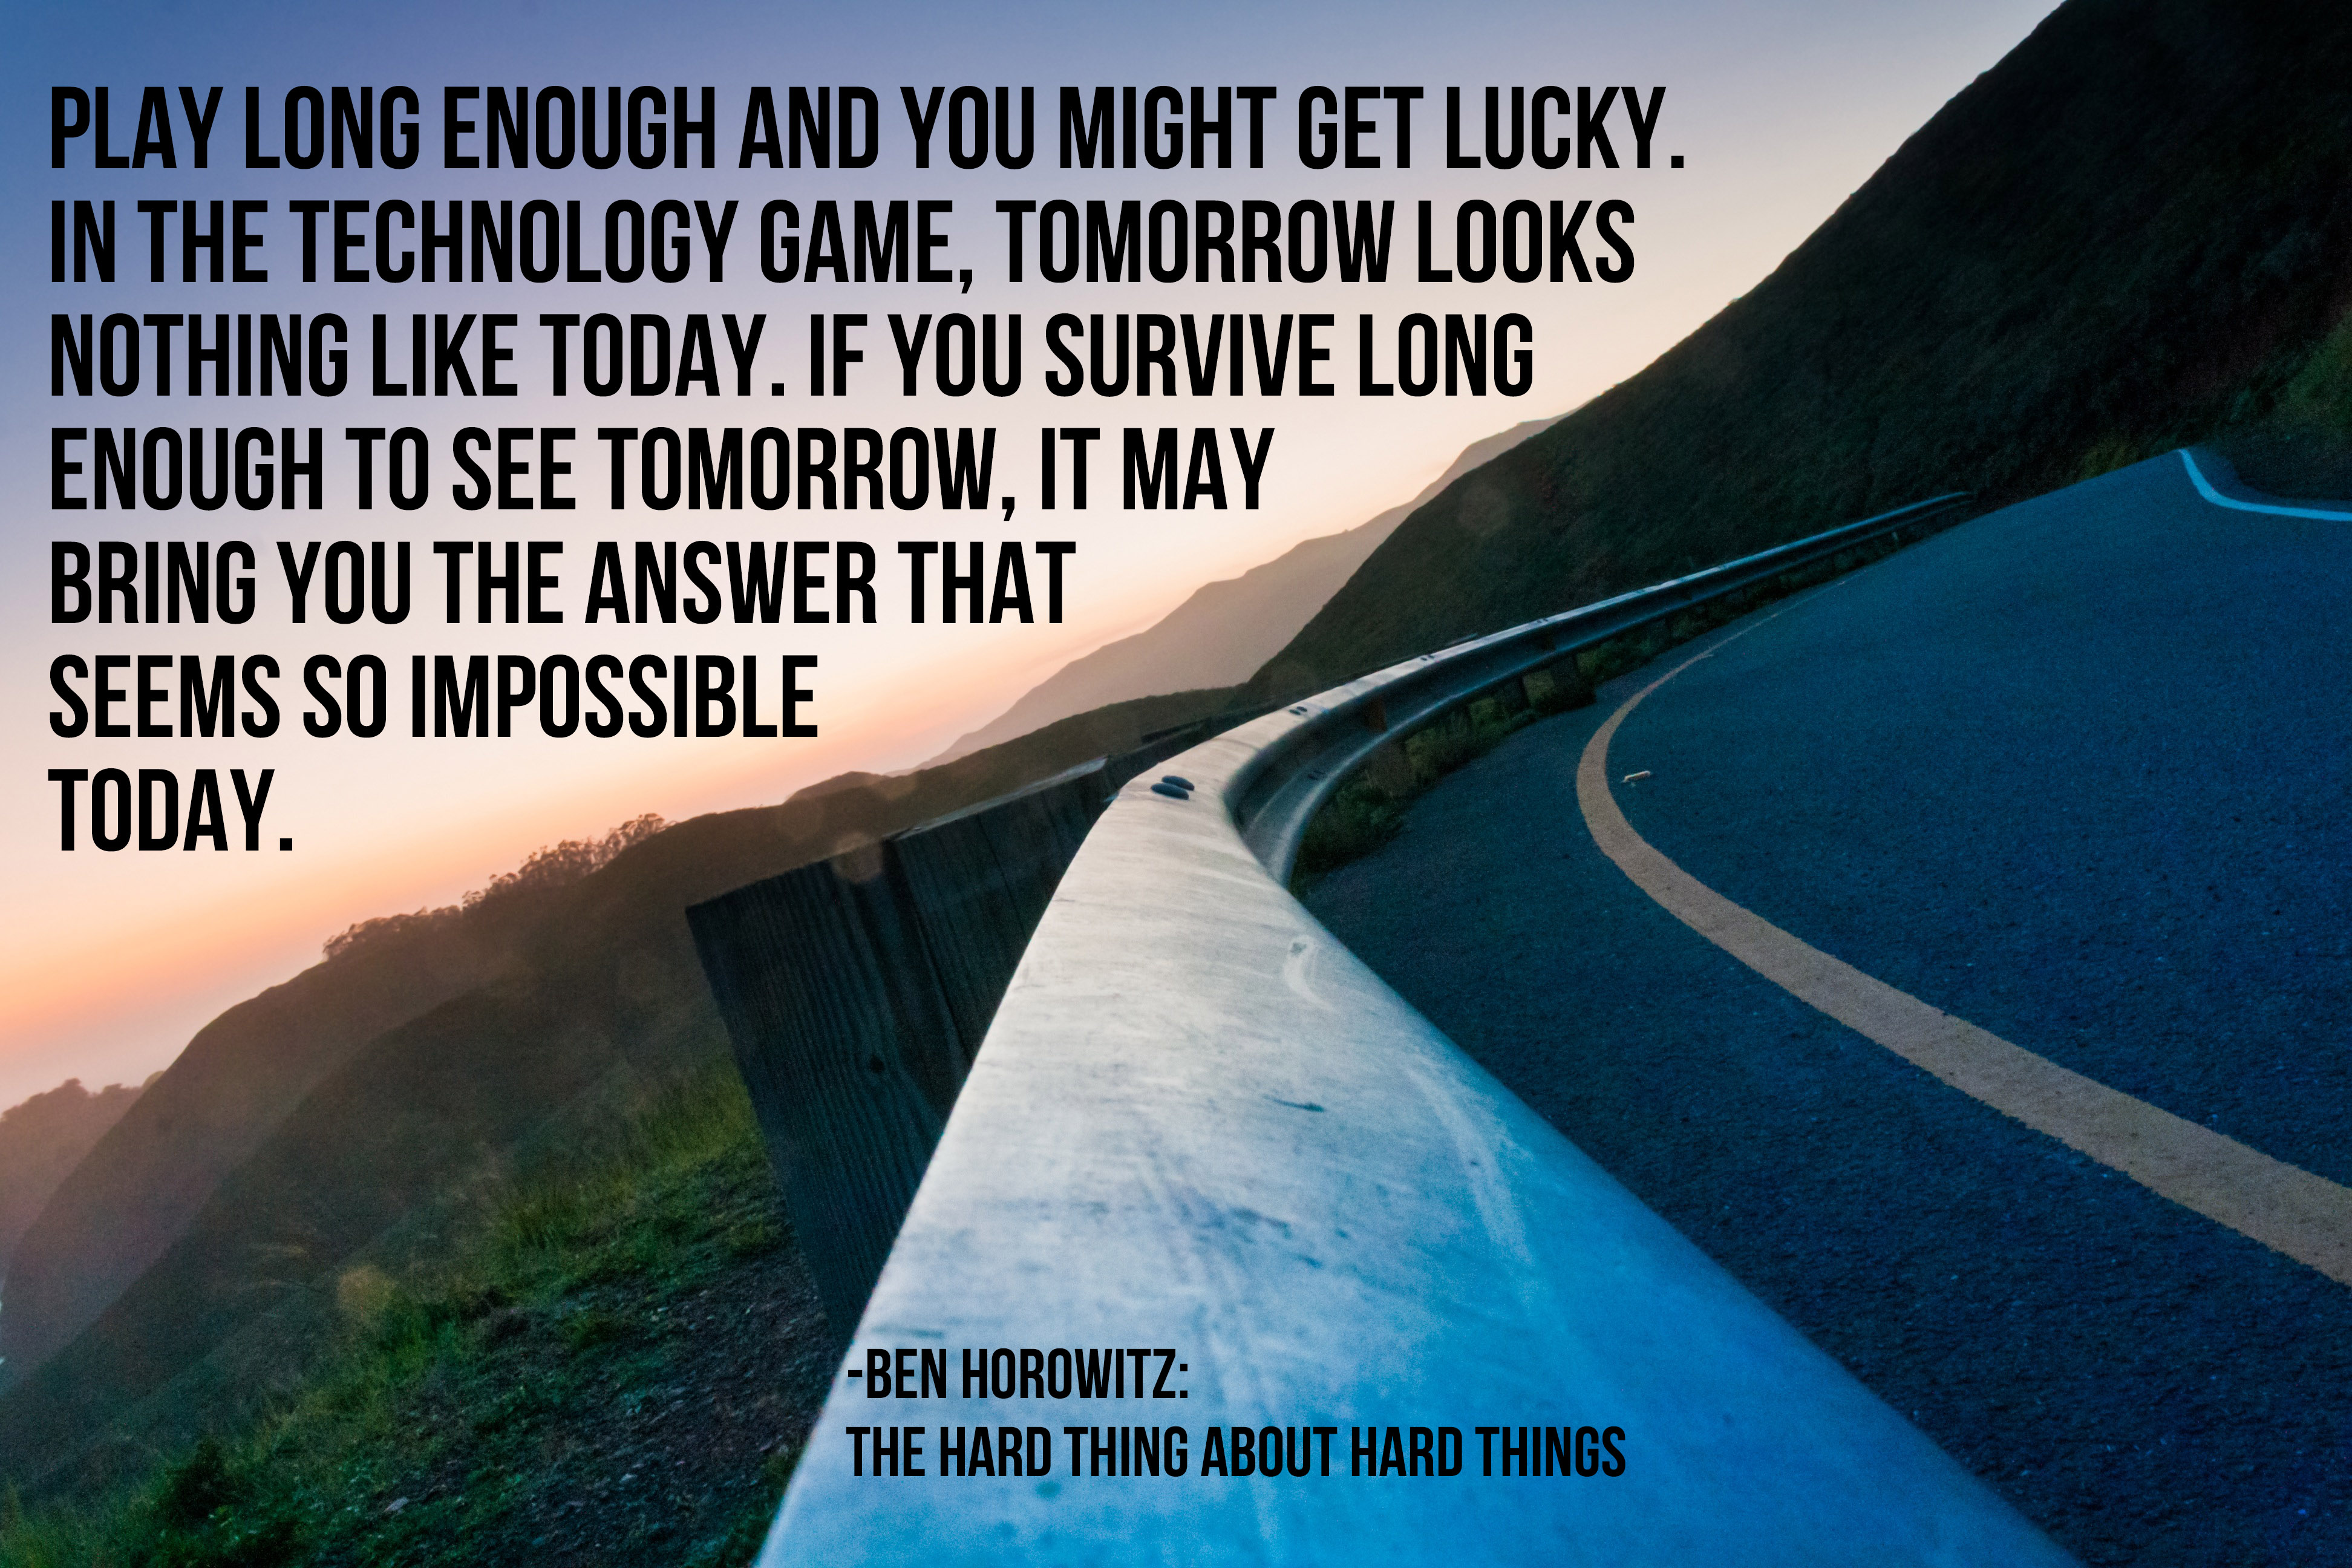 it may bring you the answer that seems so impossible today